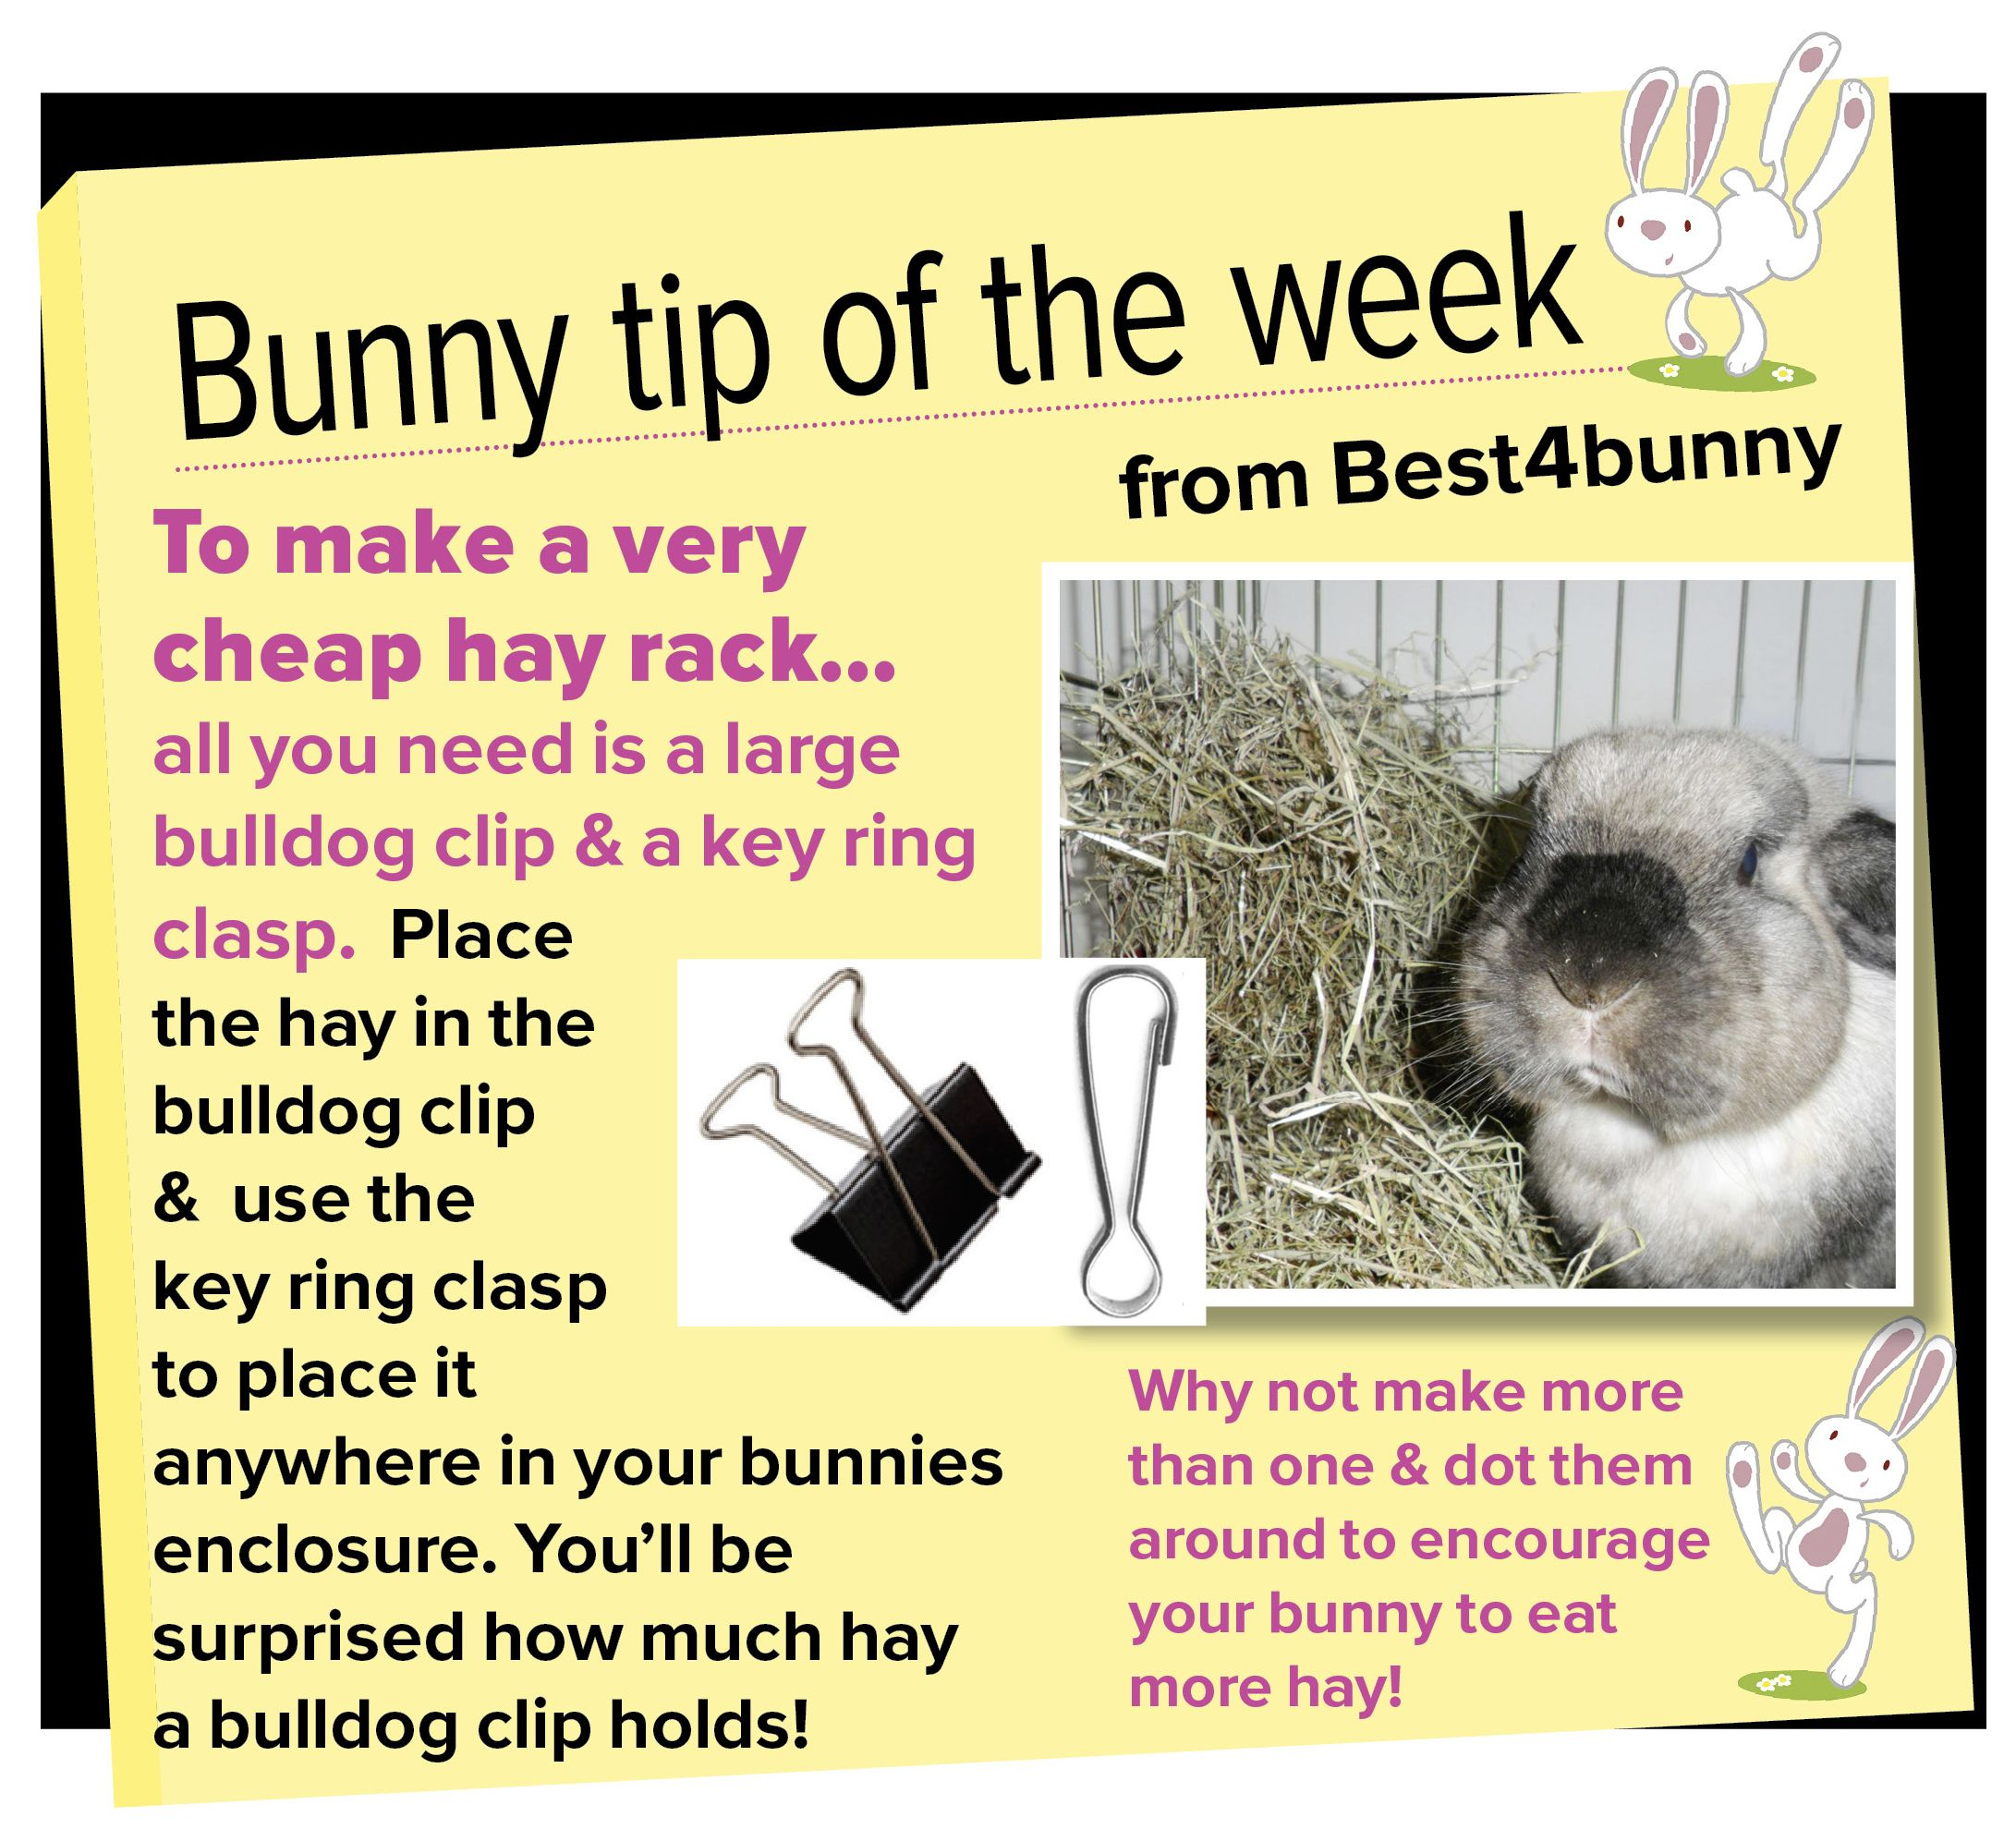 Bunny Trivia 9 Amazing Facts About Pet Rabbits: Week 12 For A Cheap Hay Rack